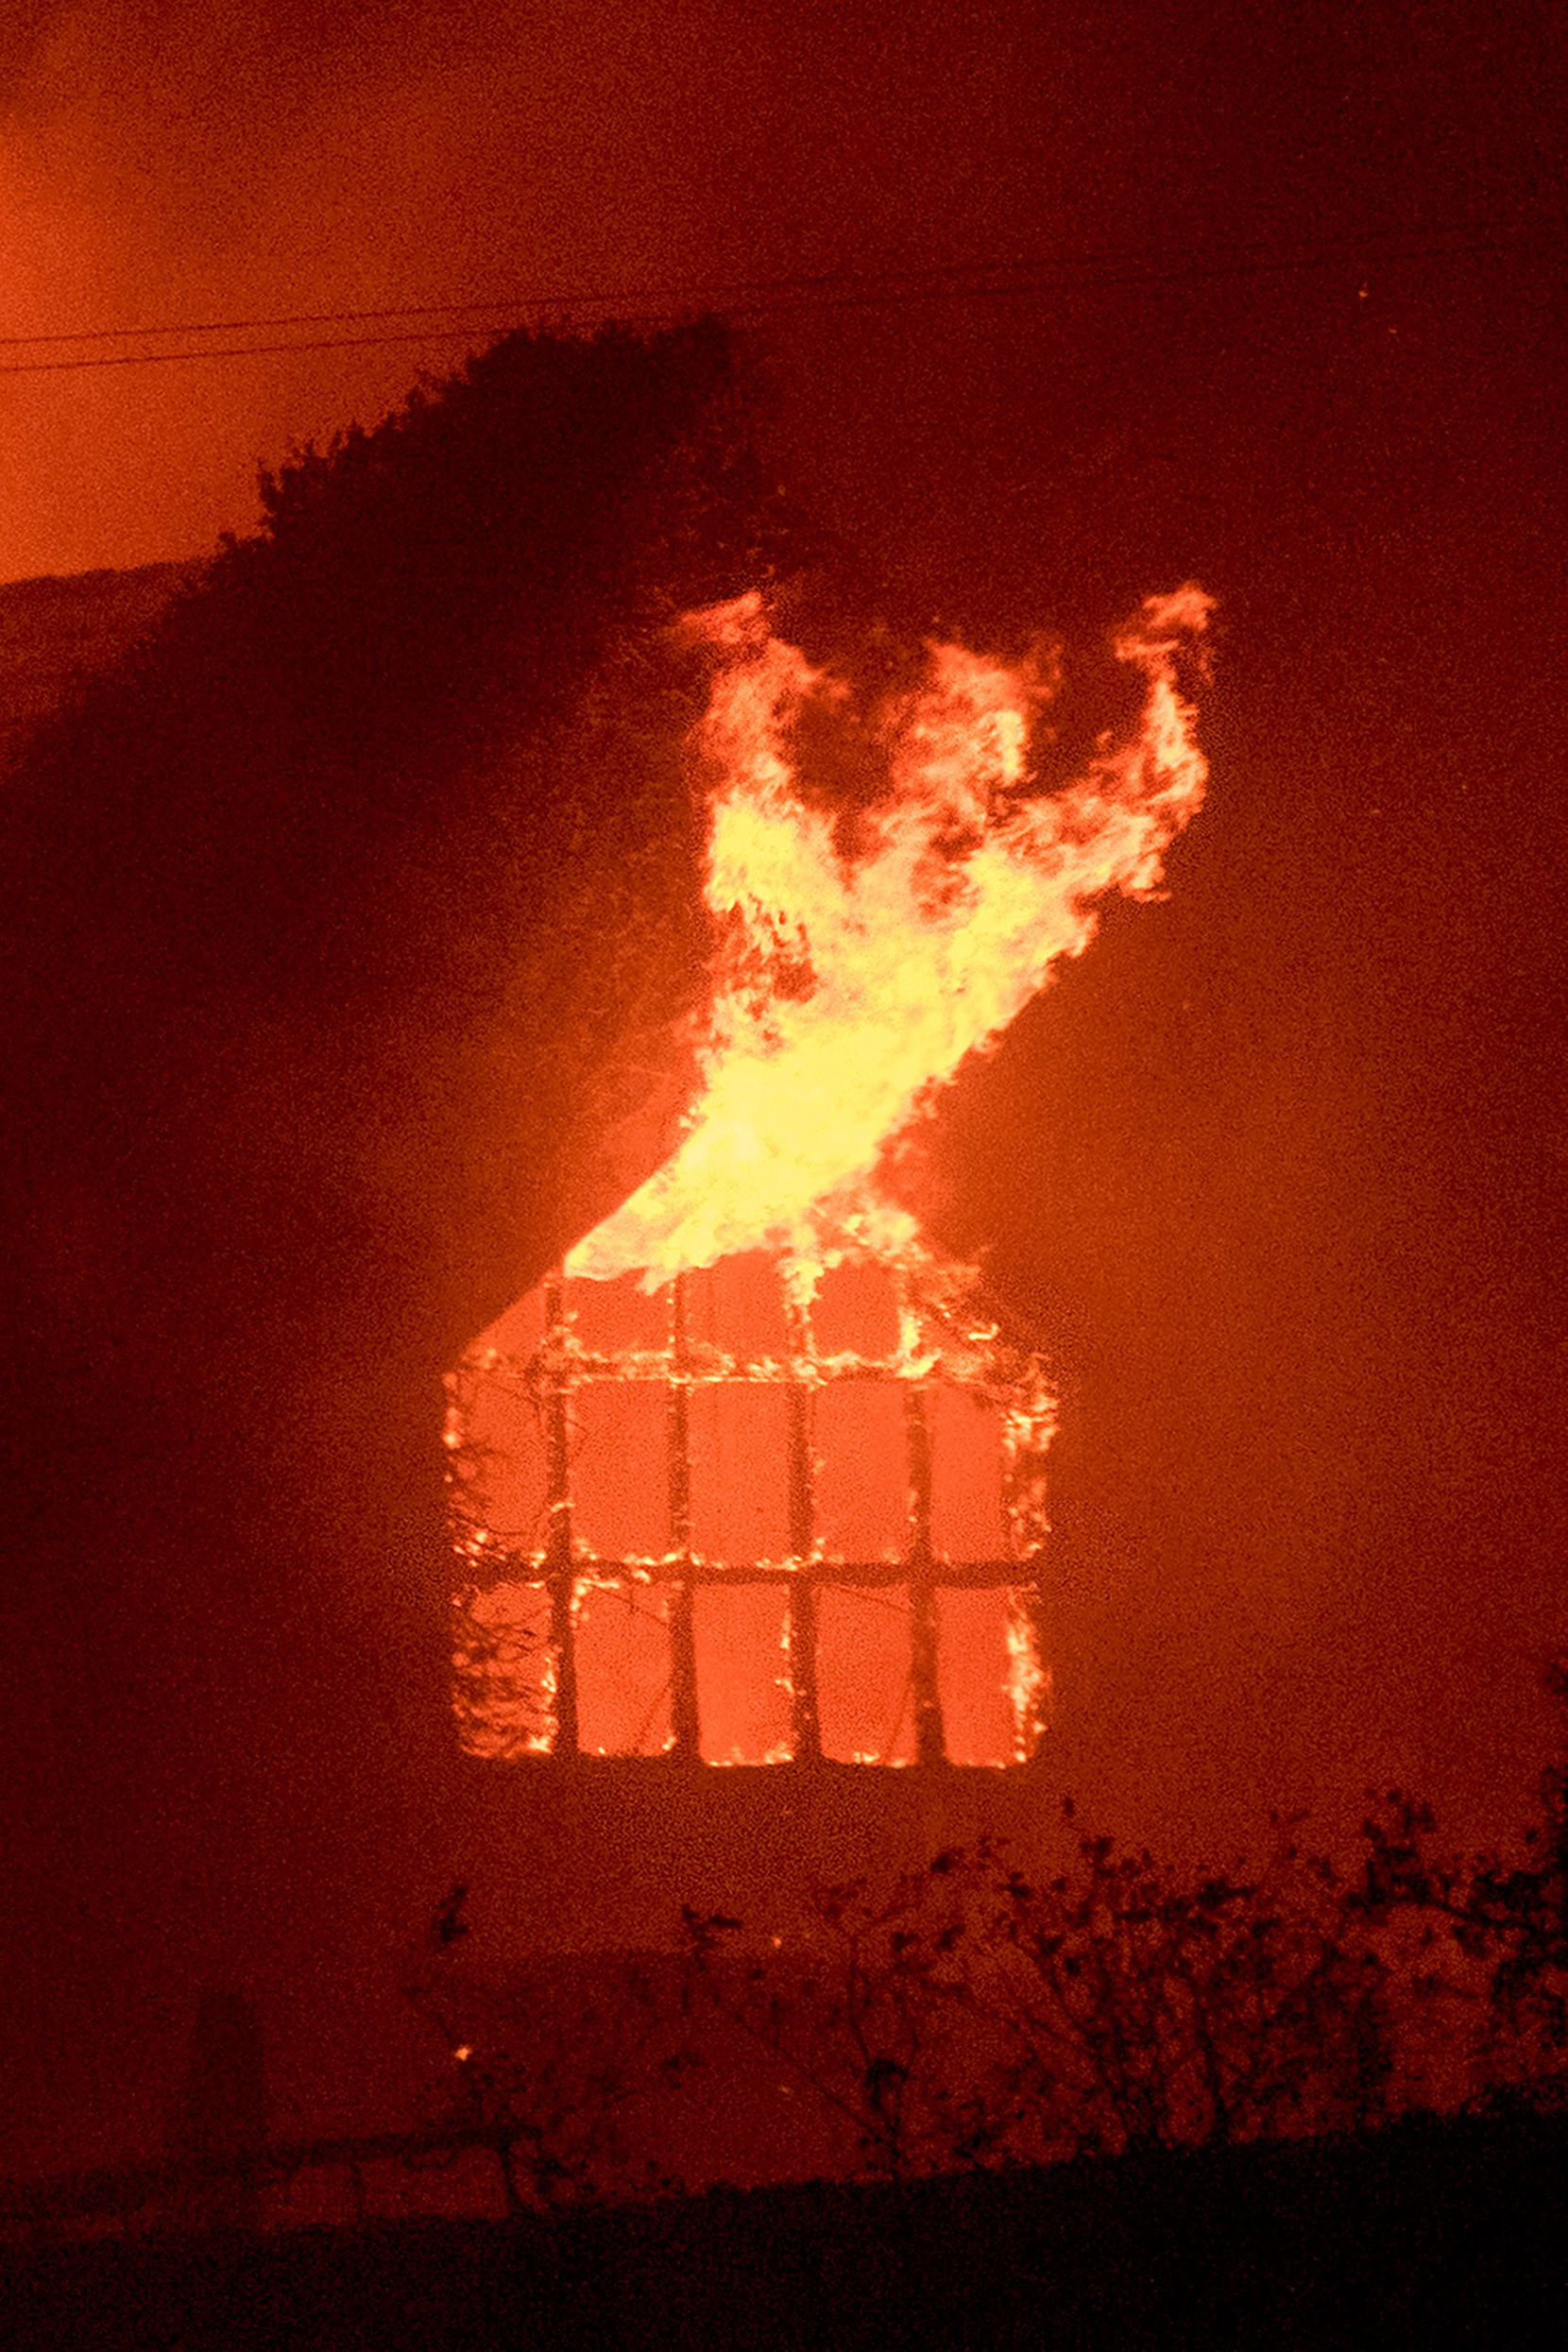 Flames shoot out from a window as the Signorello Estate winery burns in the Napa wine region of California on October 9, 2017.